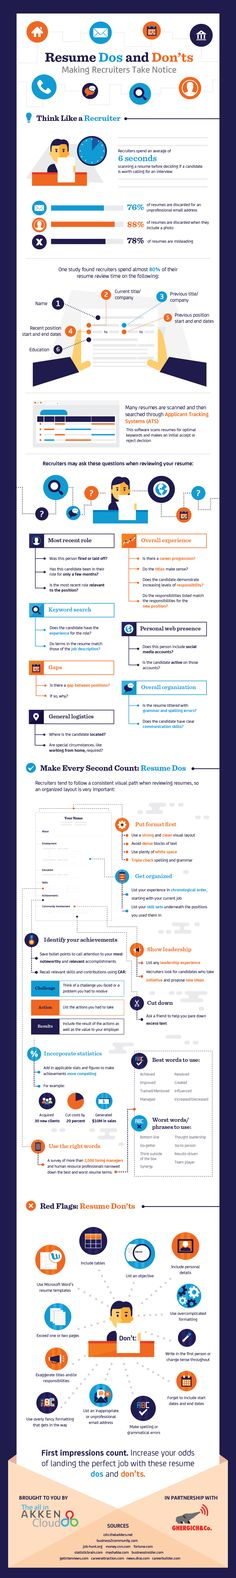 How to Get the Job You Want #infographic Re-pinned by #Europass - font size for resume